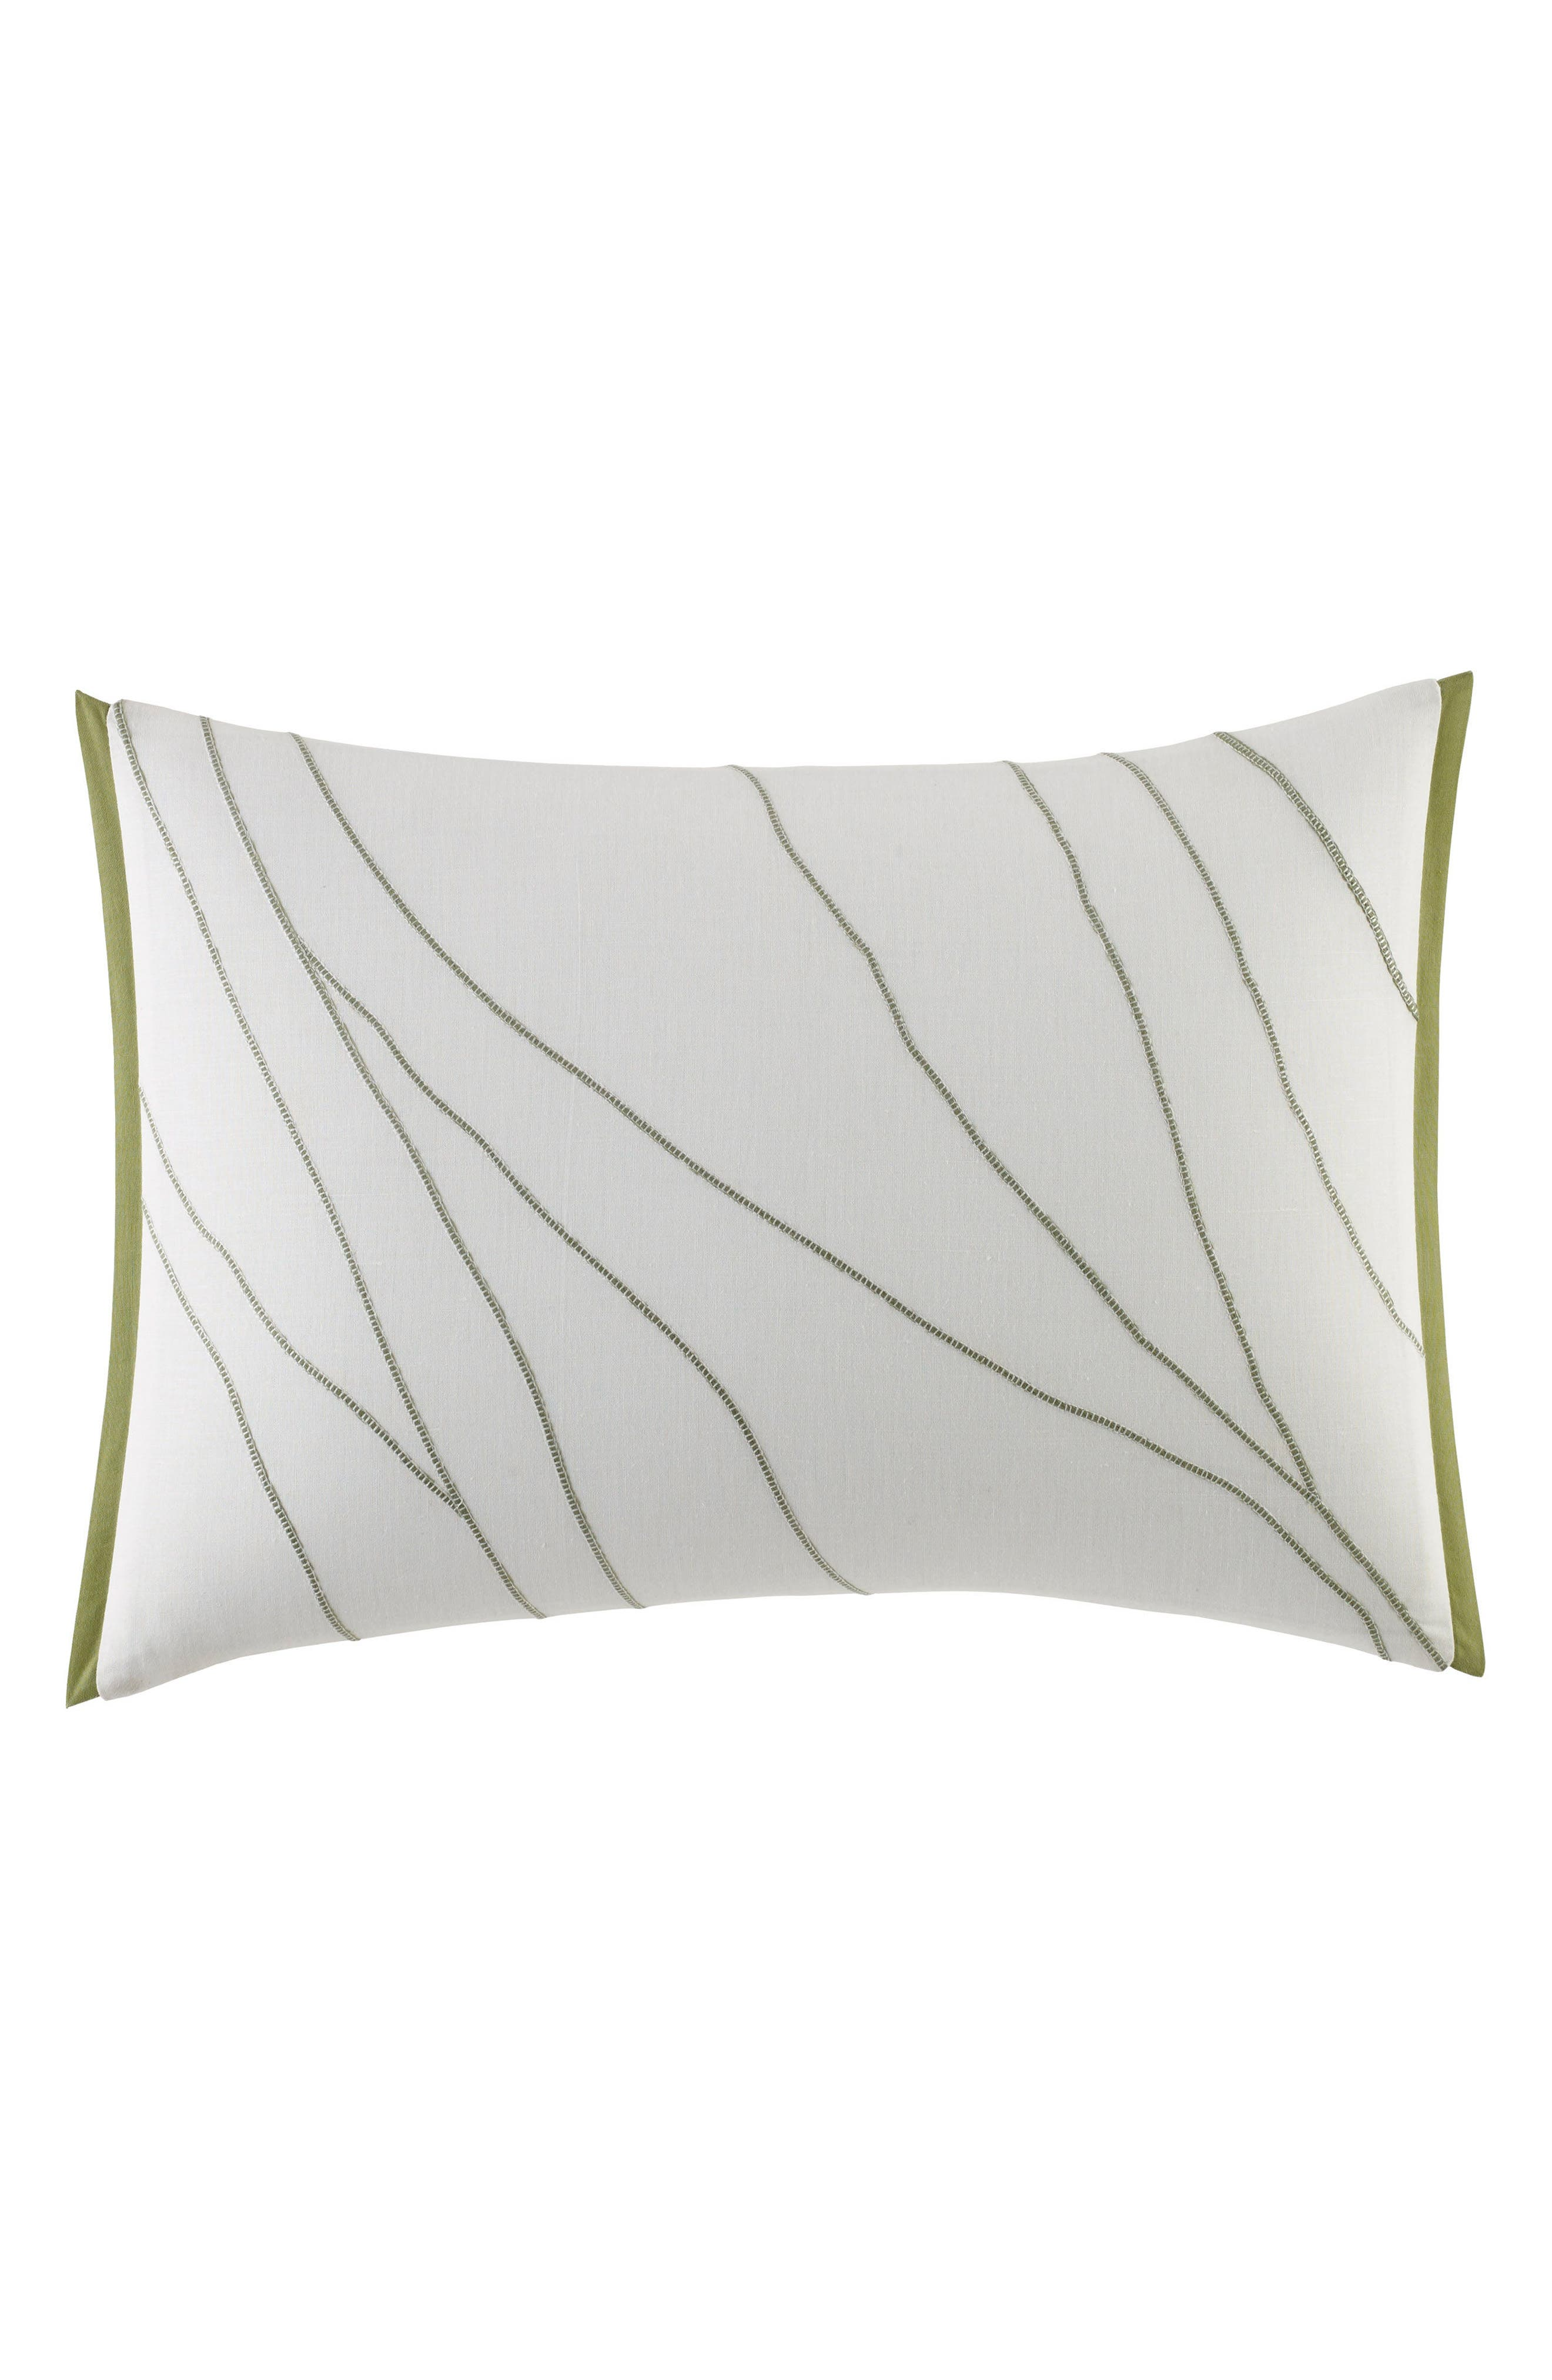 Dragonfly Accent Pillow,                         Main,                         color, WHITE